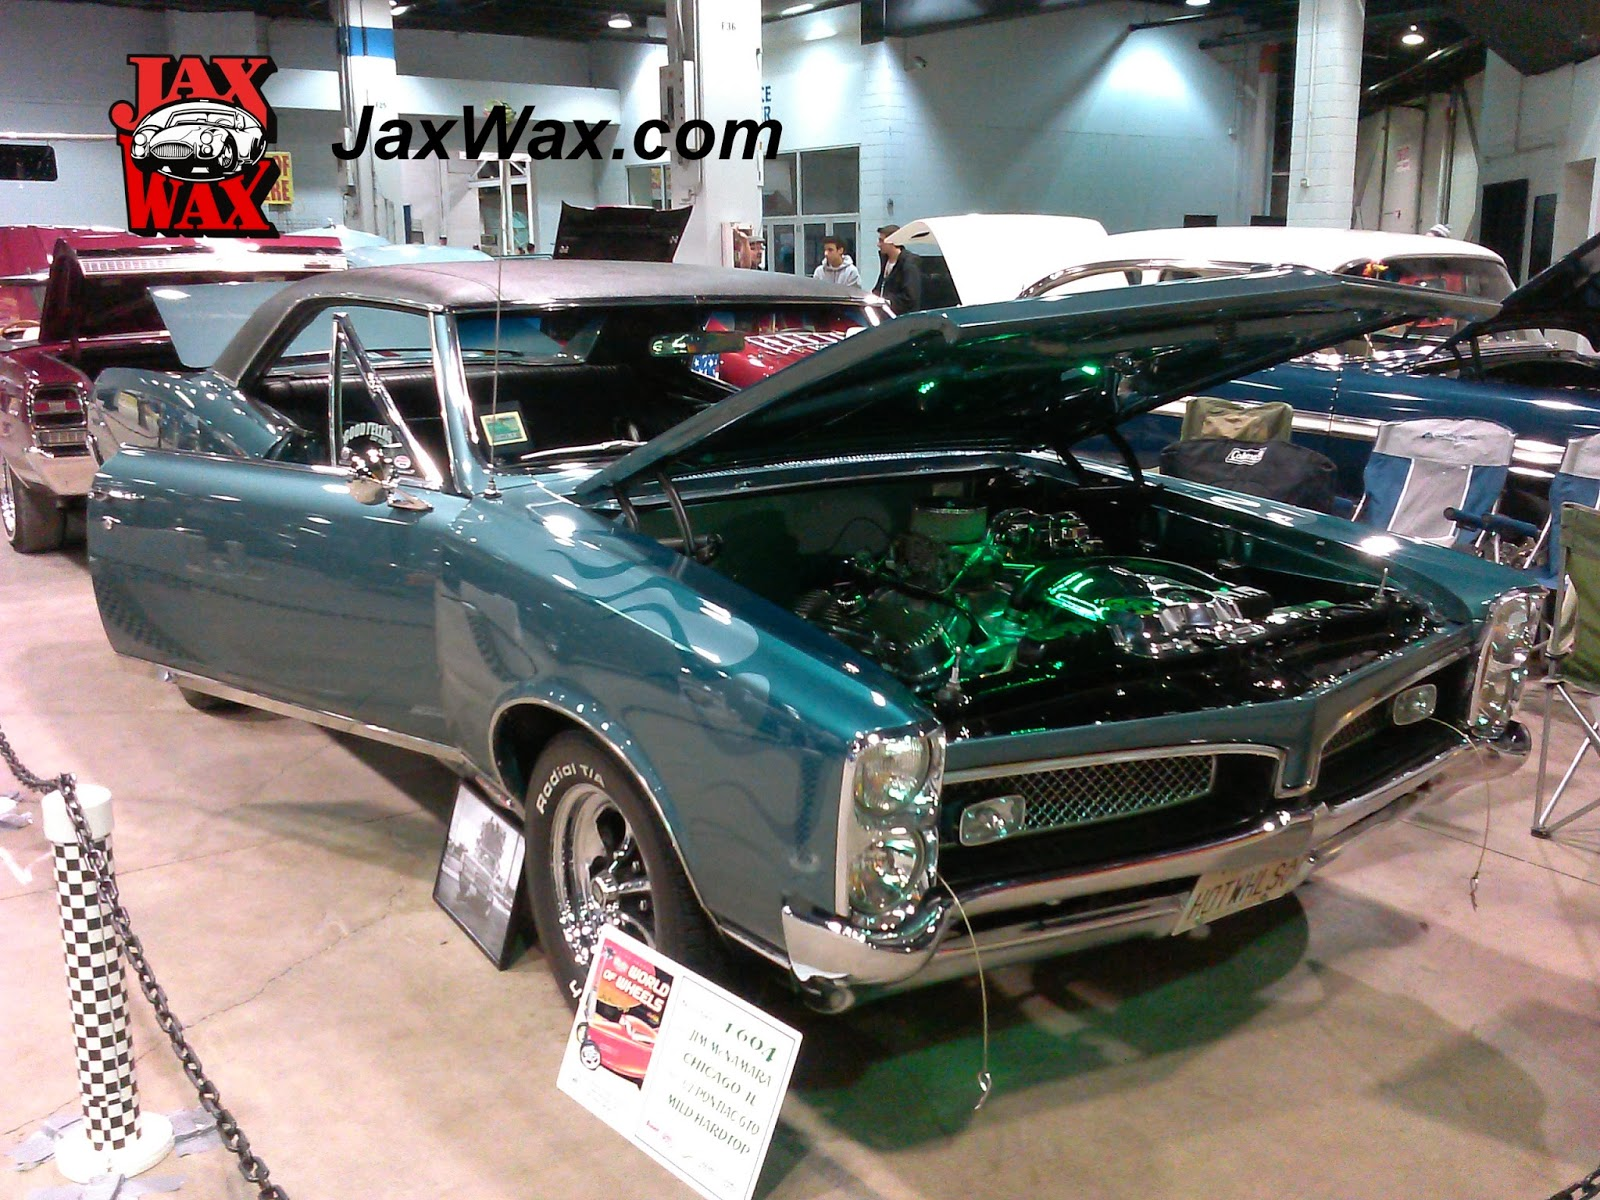 1967 Pontiac GTO Jax Wax Customer Chicago World of Wheels